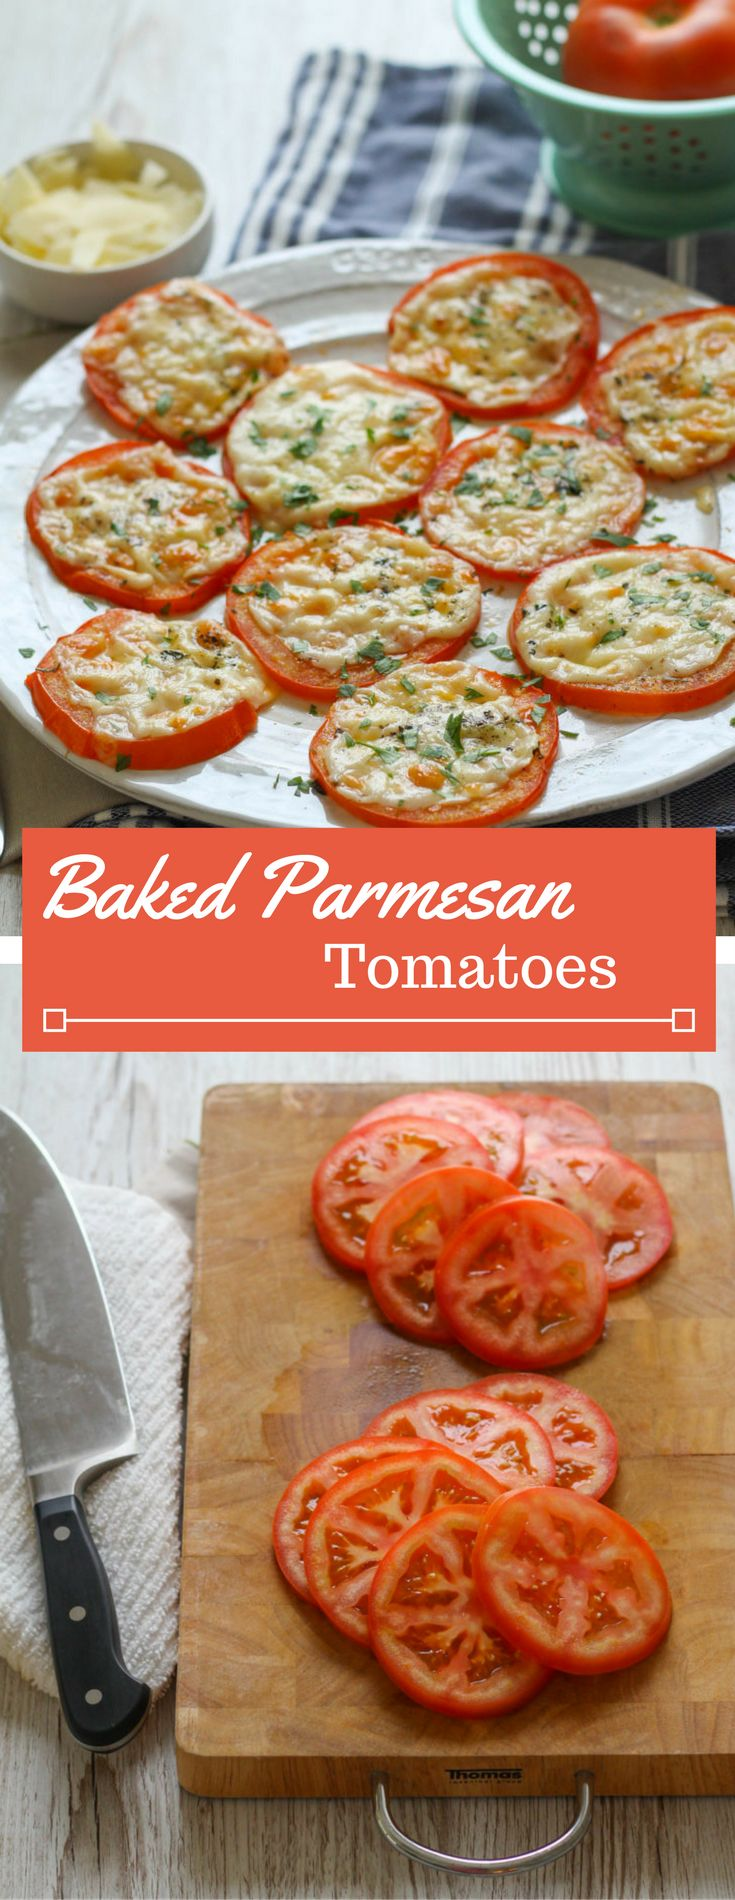 Need a new veggie side to serve with dinner? Try these simple baked tomatoes with a melted parmesan topping! (Recipes To Try)